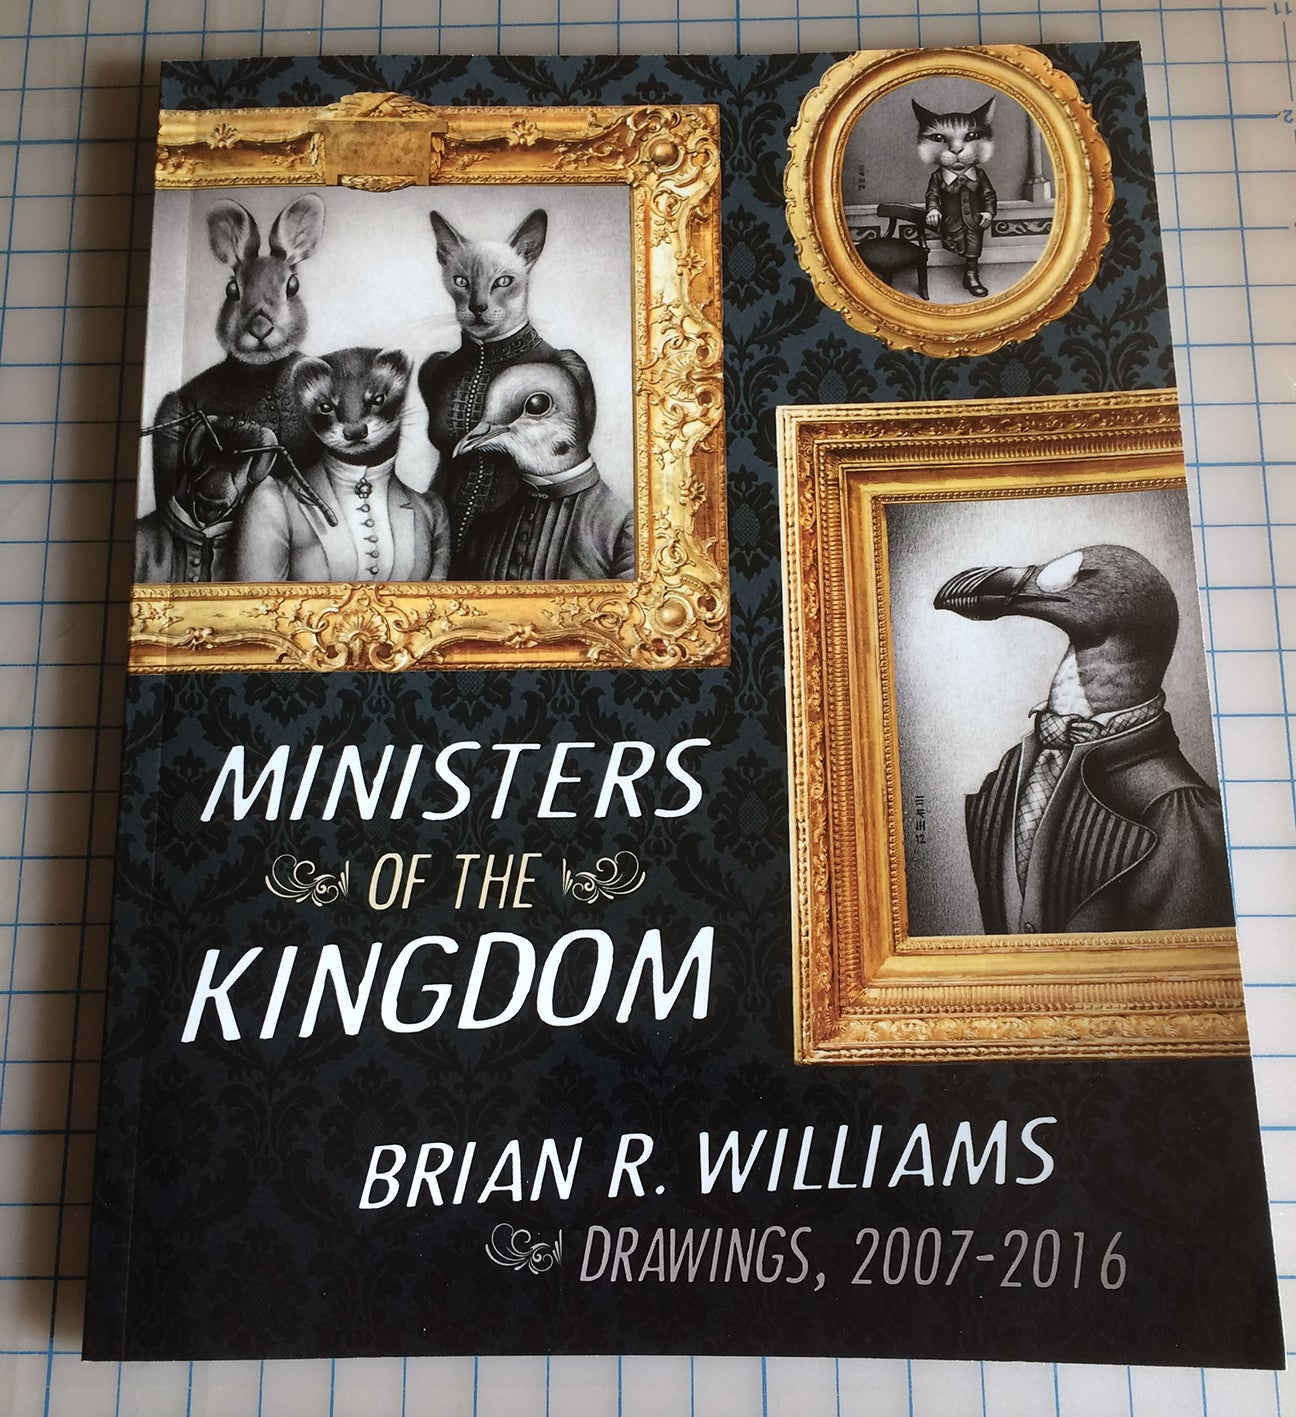 Image of Ministers of the Kingdom: Drawings, 2007-2016